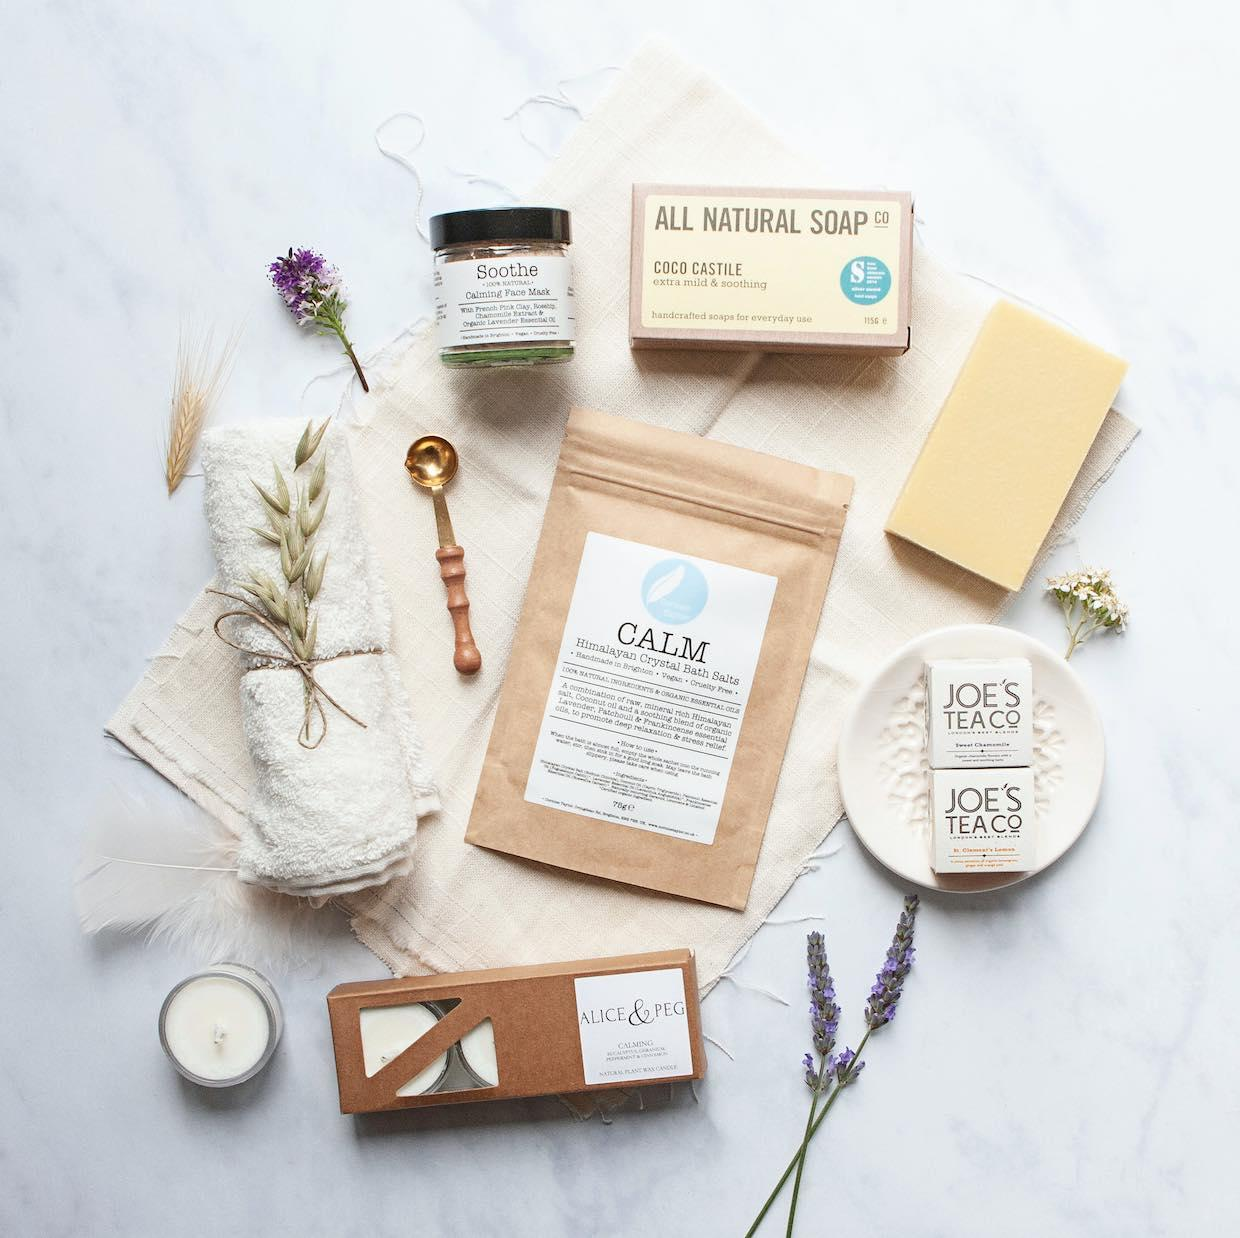 Alice & Peg Gift Set for Mothers Day